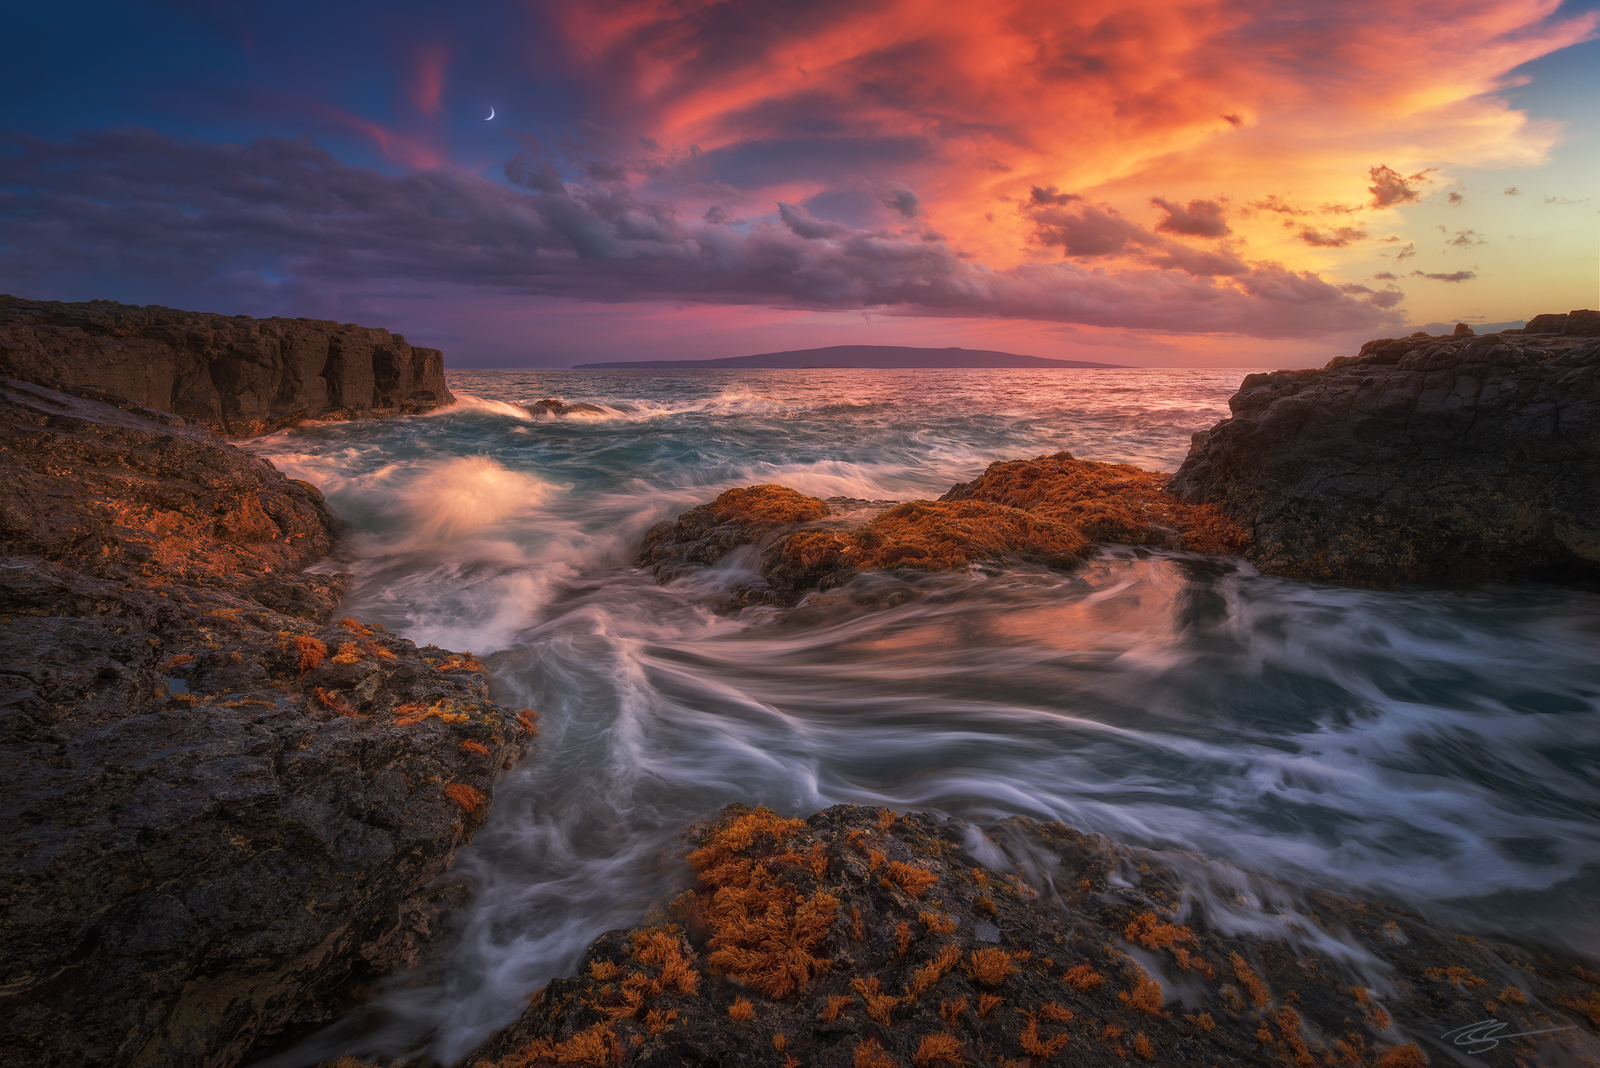 hawaii sunset seascape